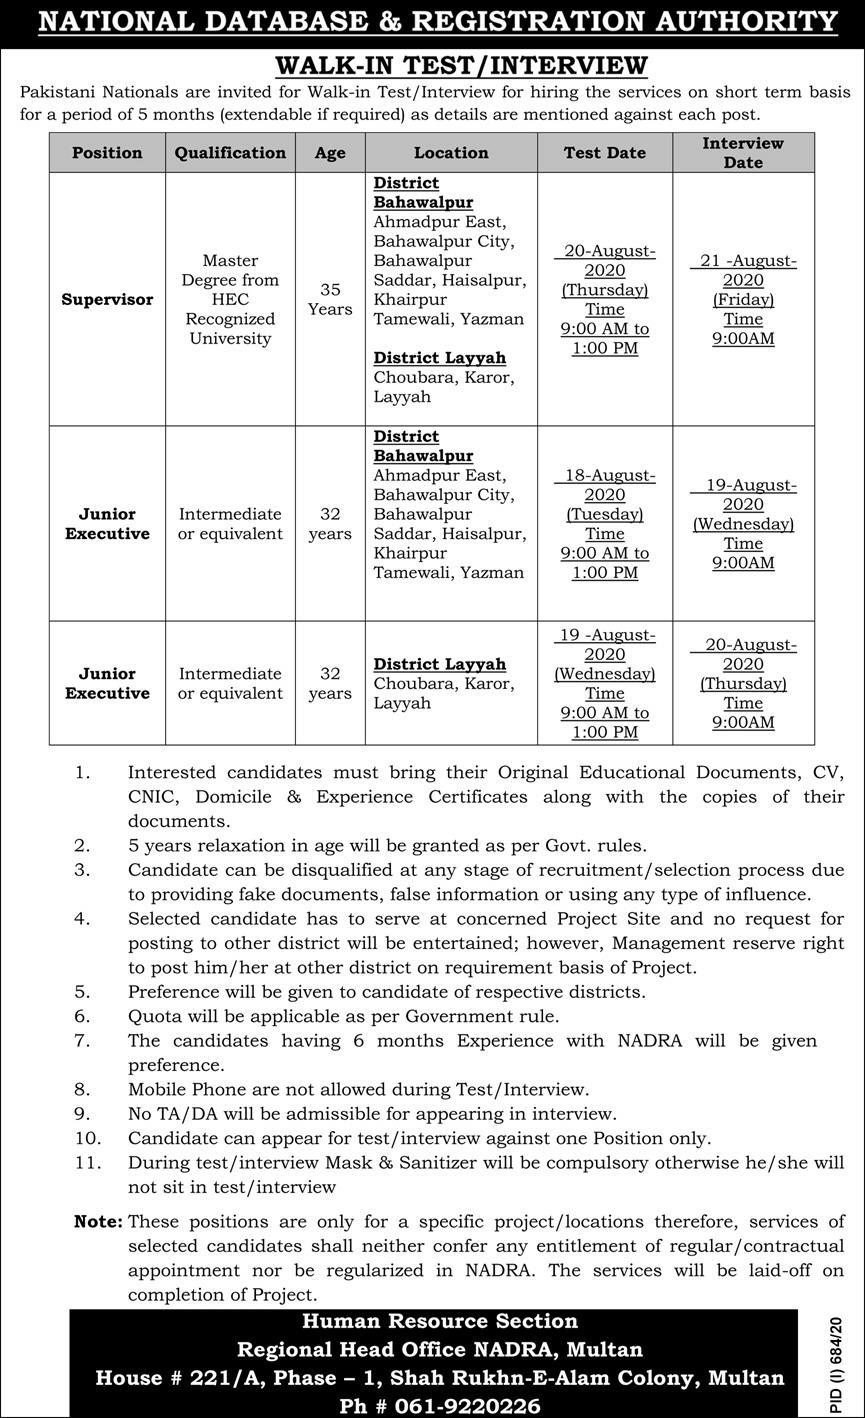 NADRA Jobs Latest 2020, National Database and Registration Authority